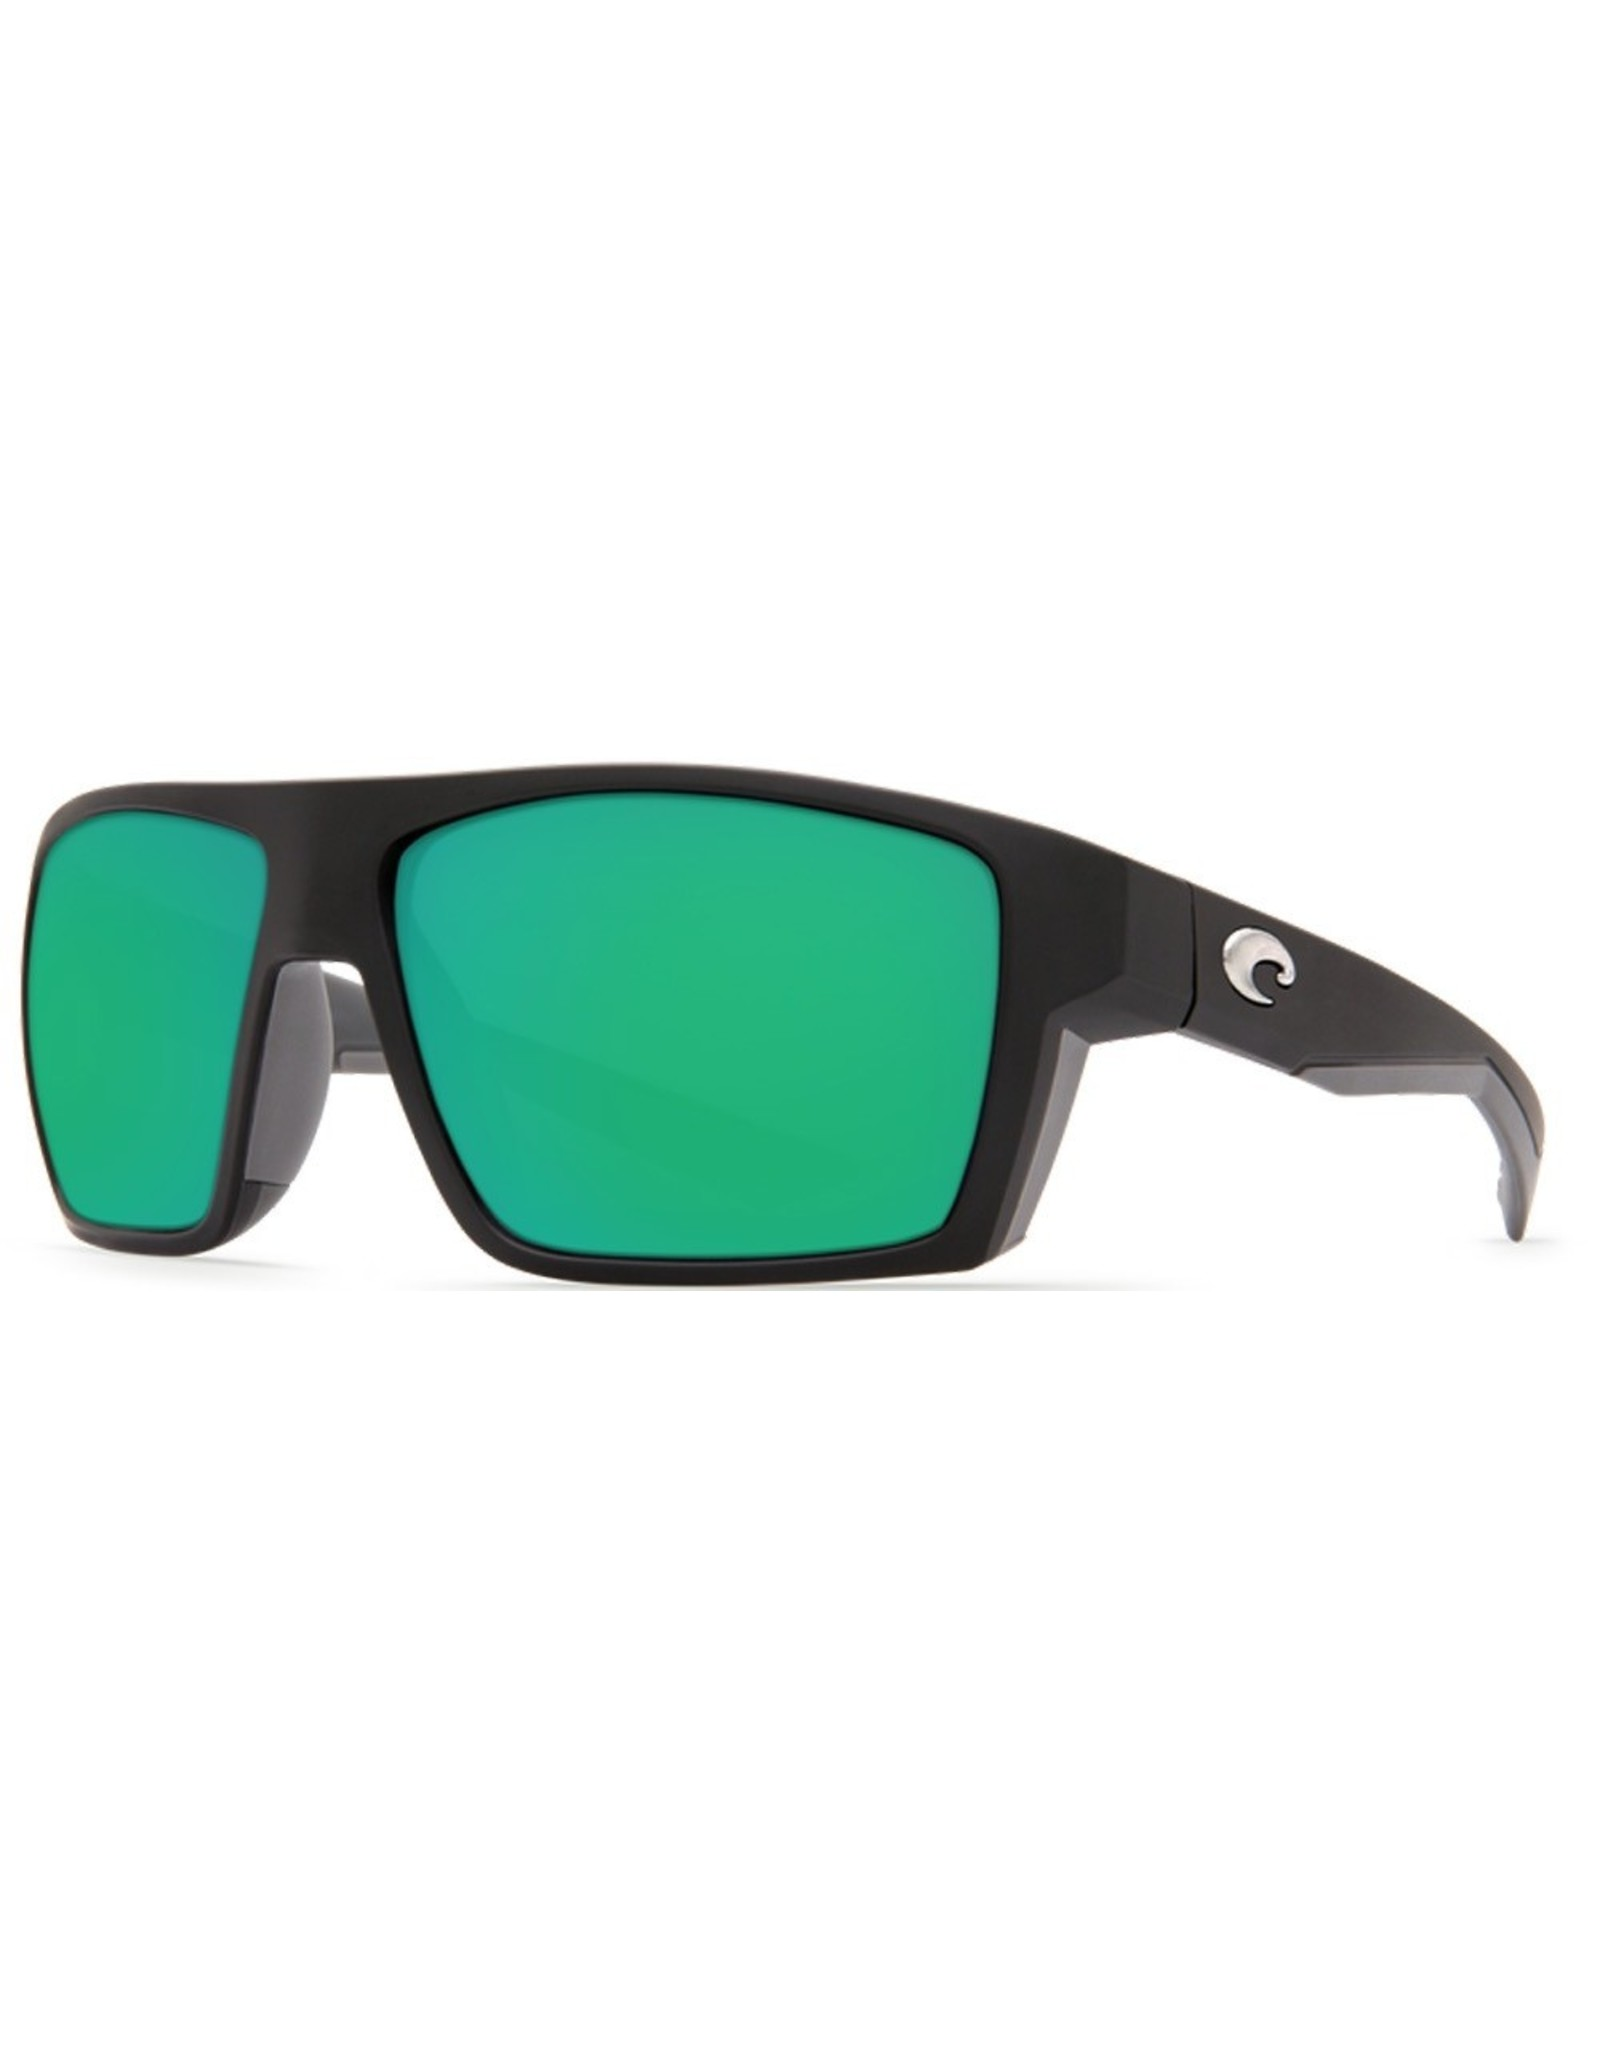 COSTA Bloke (580P Green Mirror) Black Matte Gray Frame